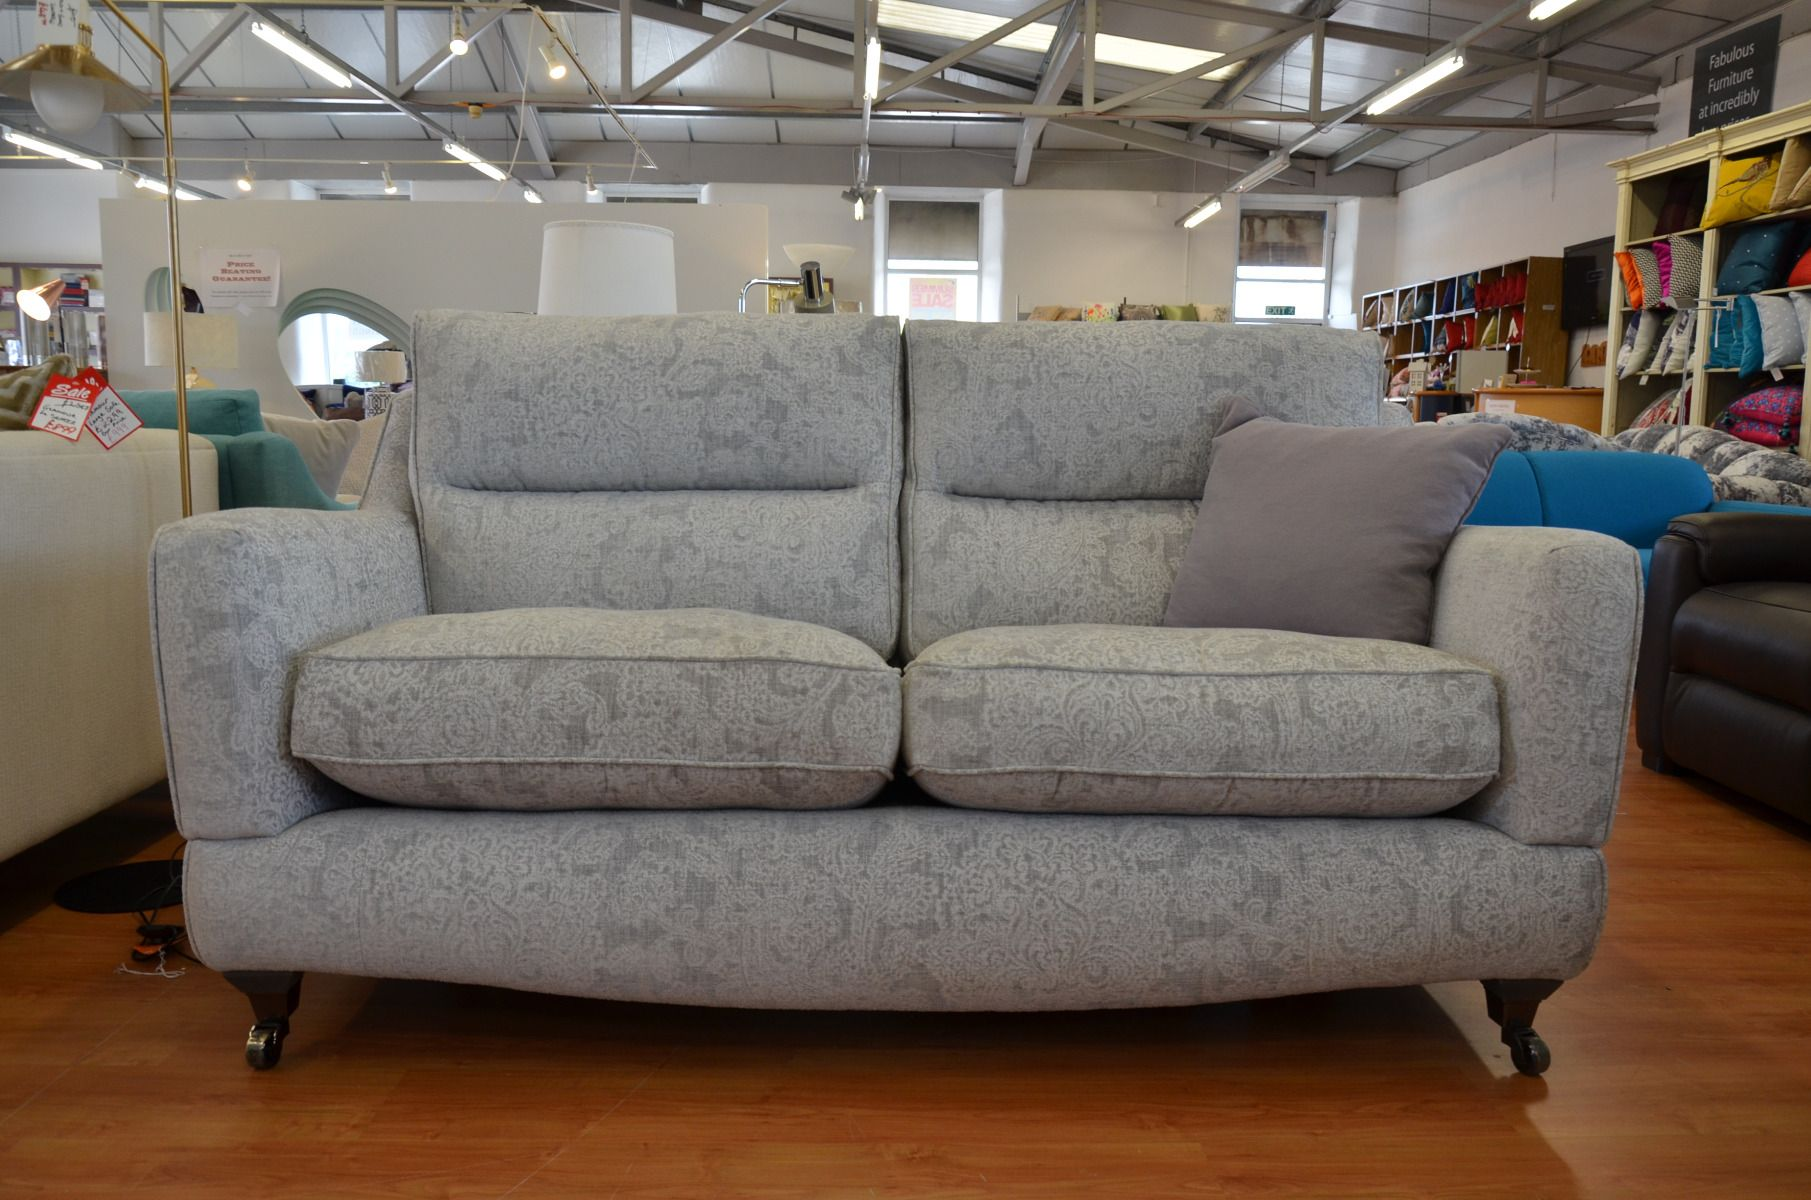 Groovy Fairfield 2 5 Seater Sofa In Grey Paisley Fabric Alphanode Cool Chair Designs And Ideas Alphanodeonline